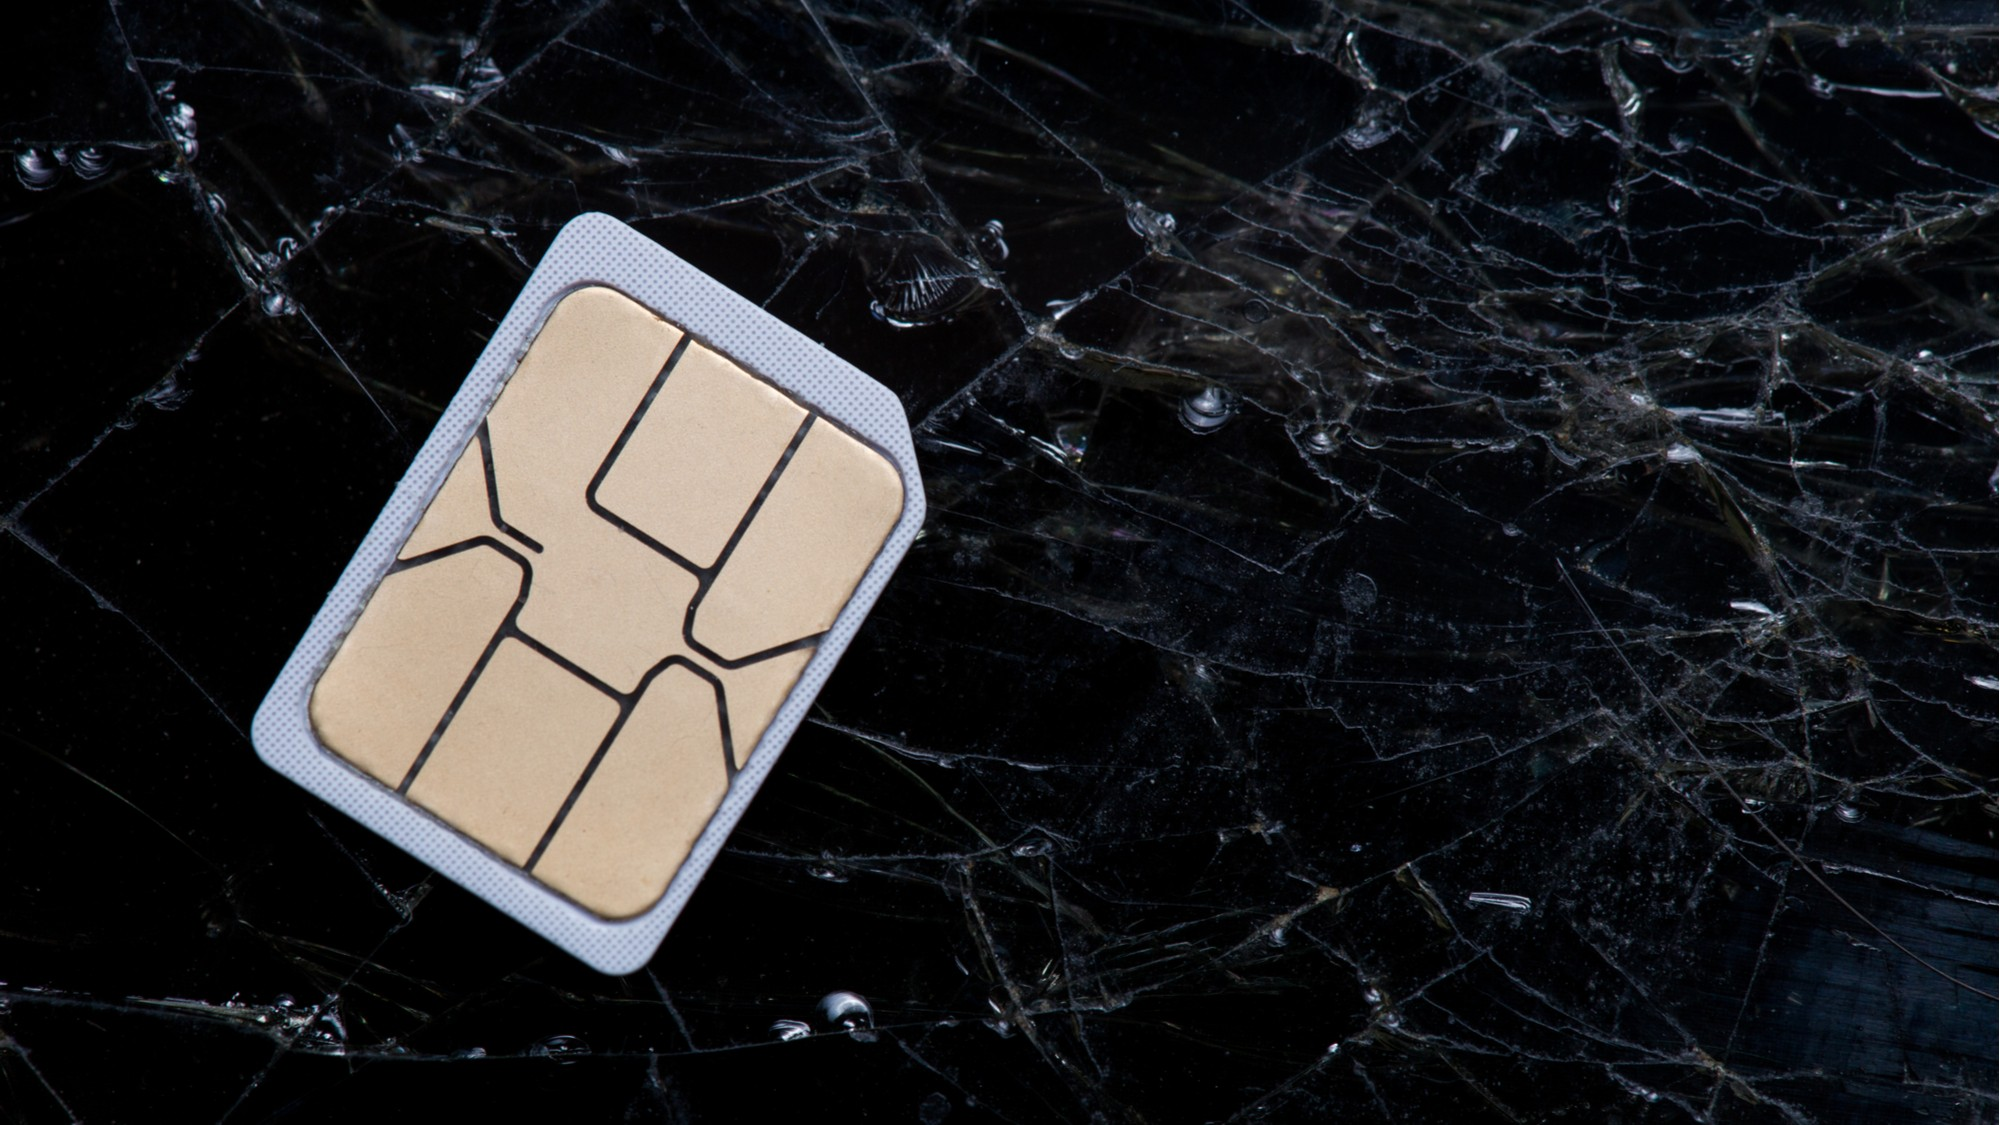 I Lived a Nightmare:' SIM Hijacking Victims Share Their